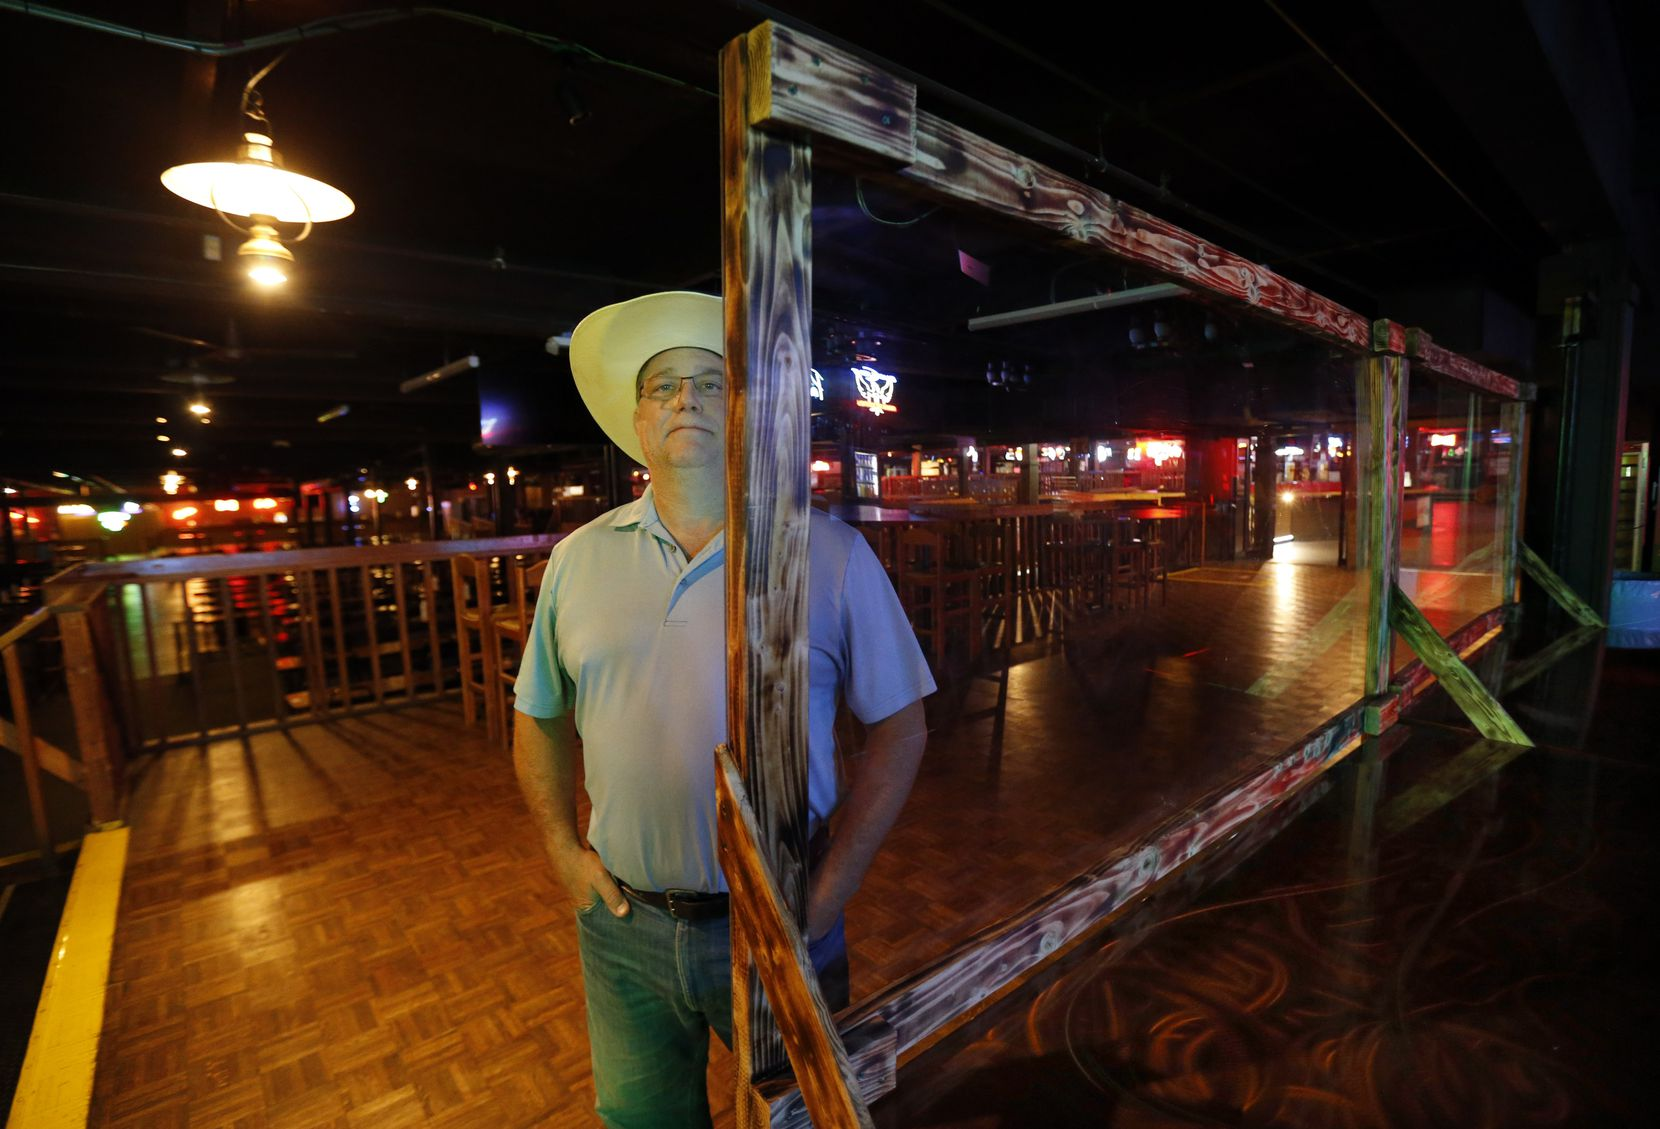 Billy Bob's Texas' Ambassador of Fun Marty Travis — also known as the general manager — stands behind a plexiglass wall separating patrons from the food service in the Fort Worth entertainment venue.